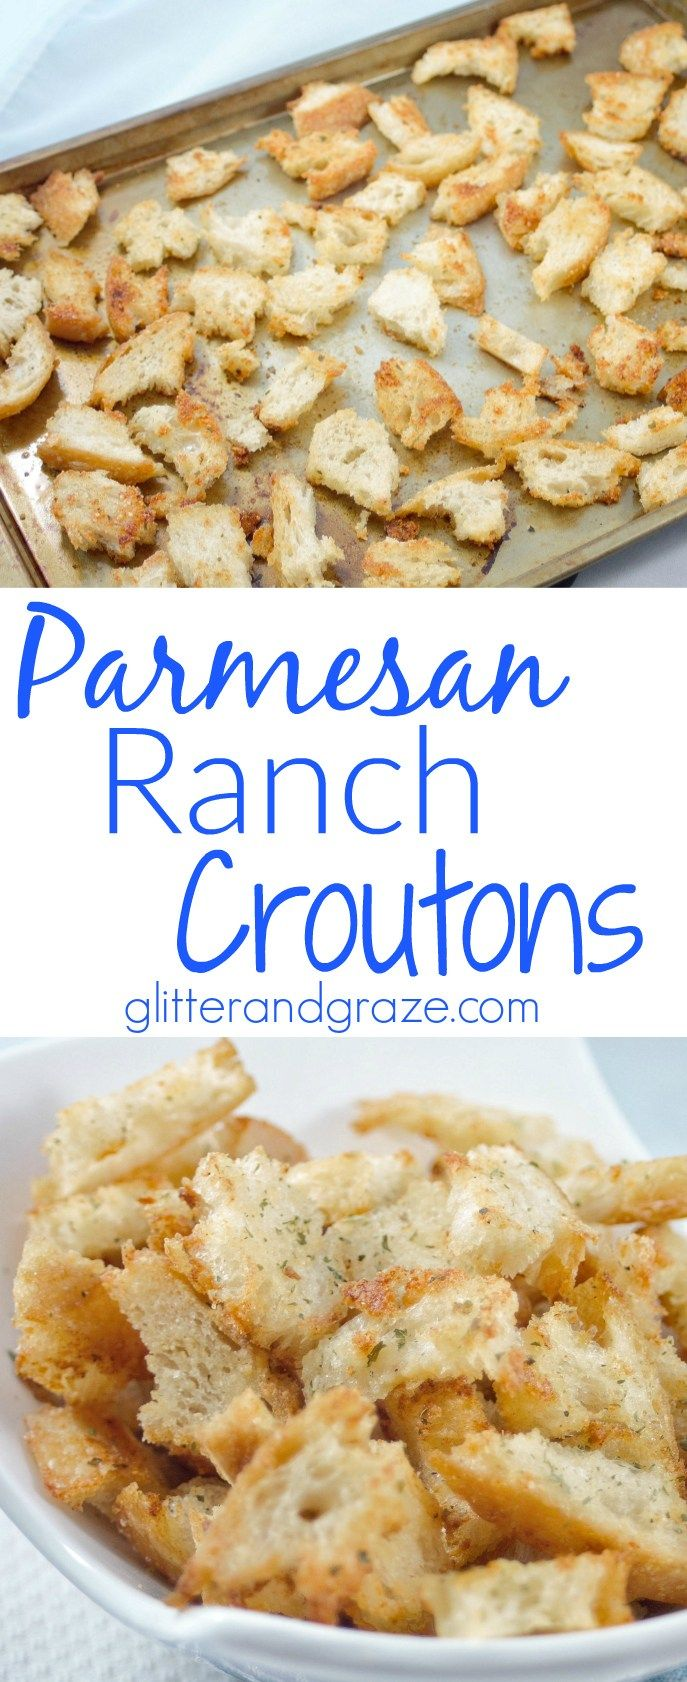 Easy to make homemade croutons with a tangy twist.  You'll love these Parmesan ranch croutons you won't be able to stop eating them